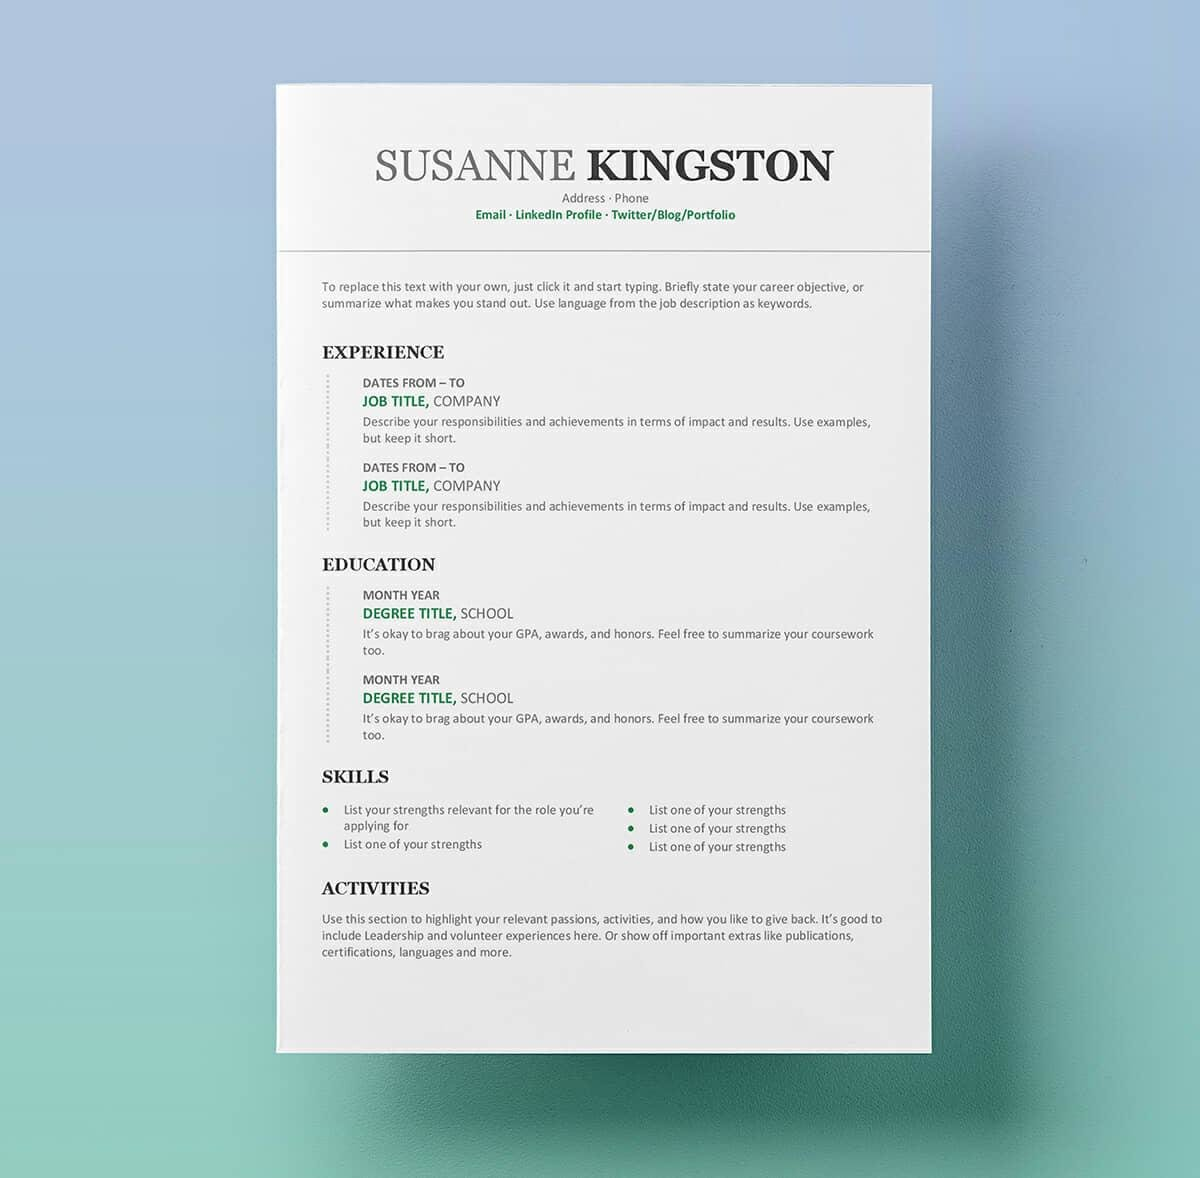 Superb Microsoft Word Resume With Green Details